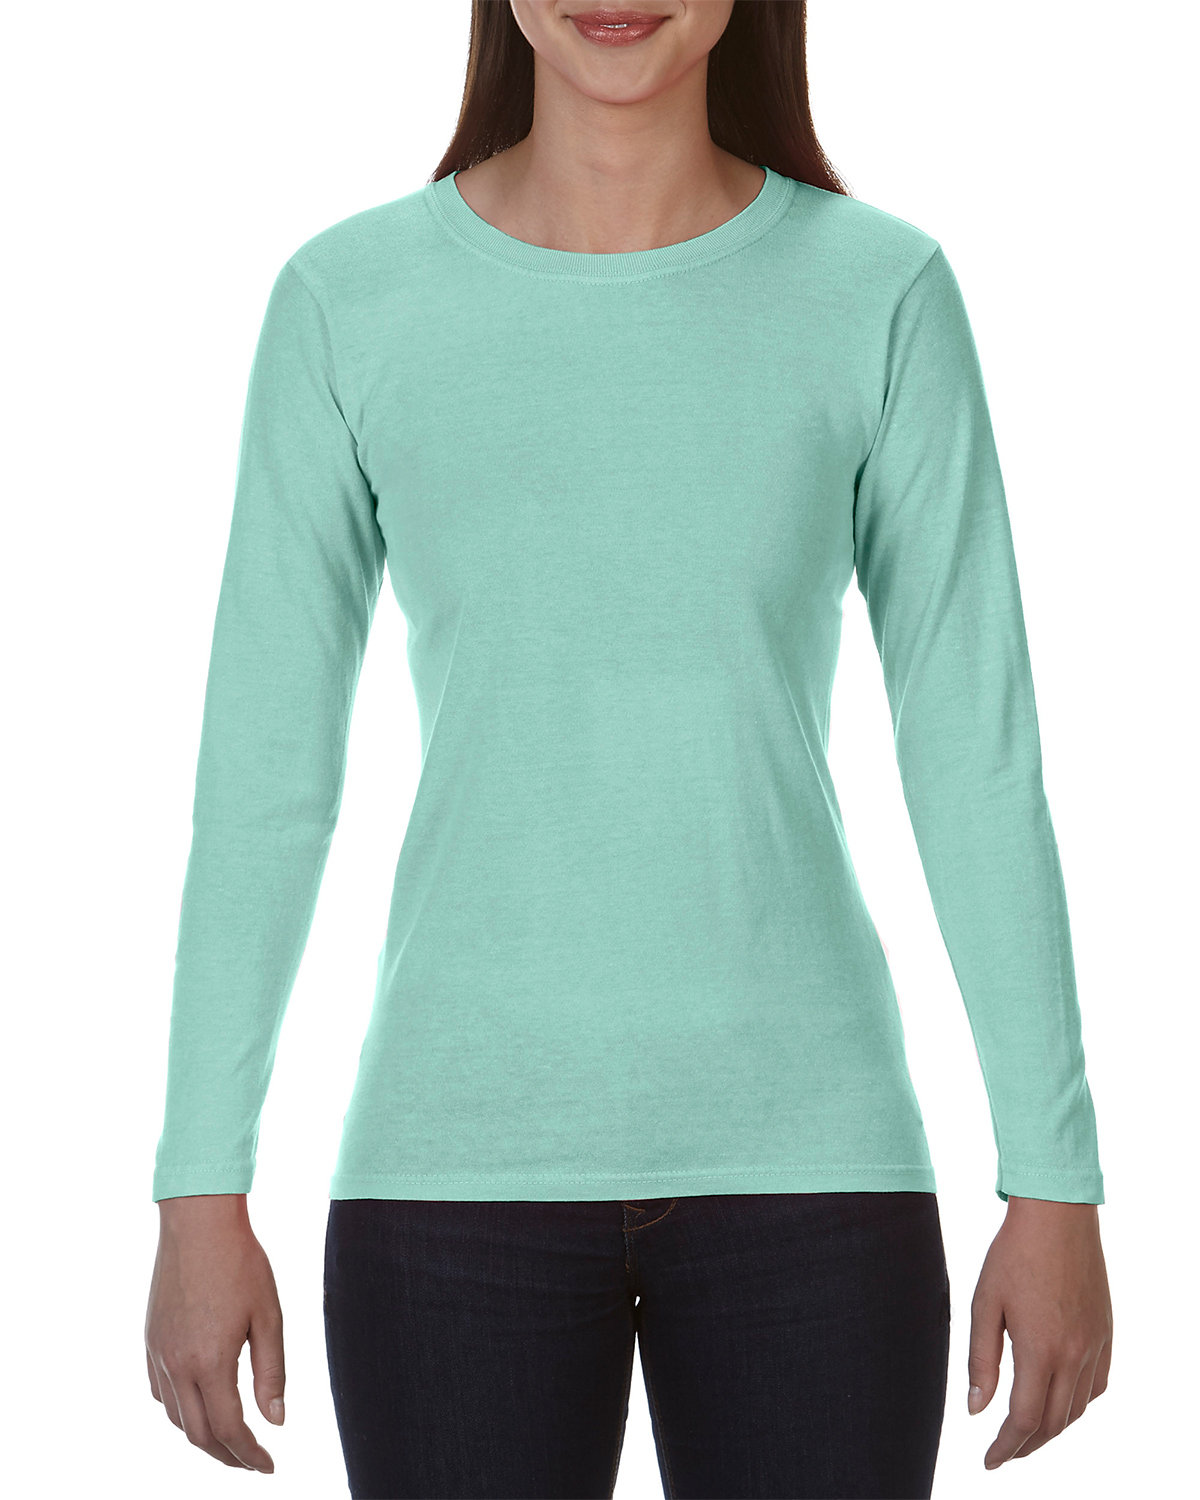 Comfort Colors Ladies' Midweight RS Long-Sleeve T-Shirt ISLAND REEF